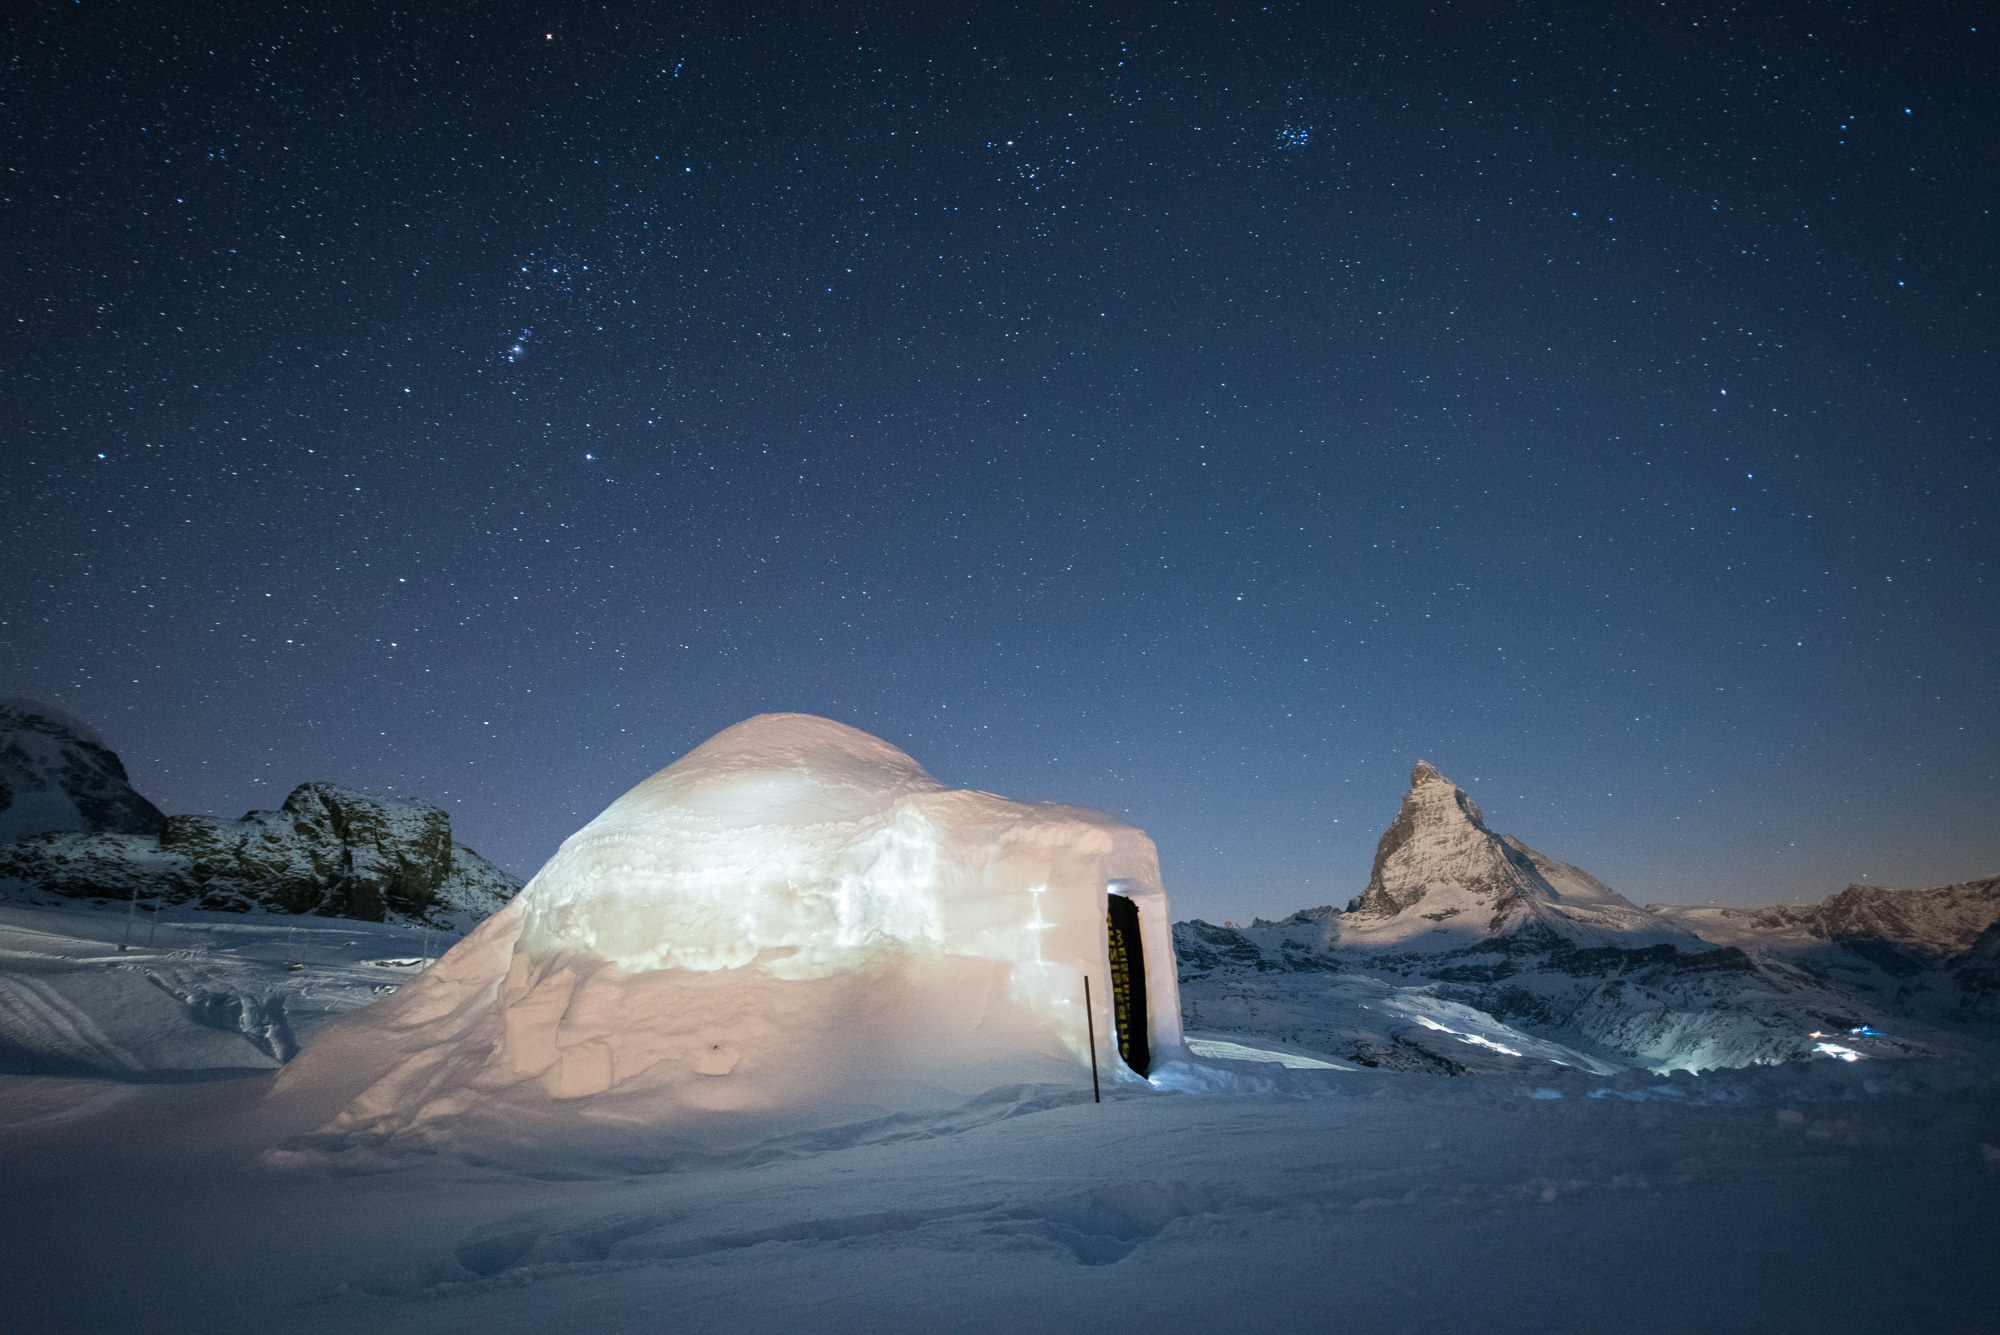 An igloo in the snow at night with the matterhorn behind